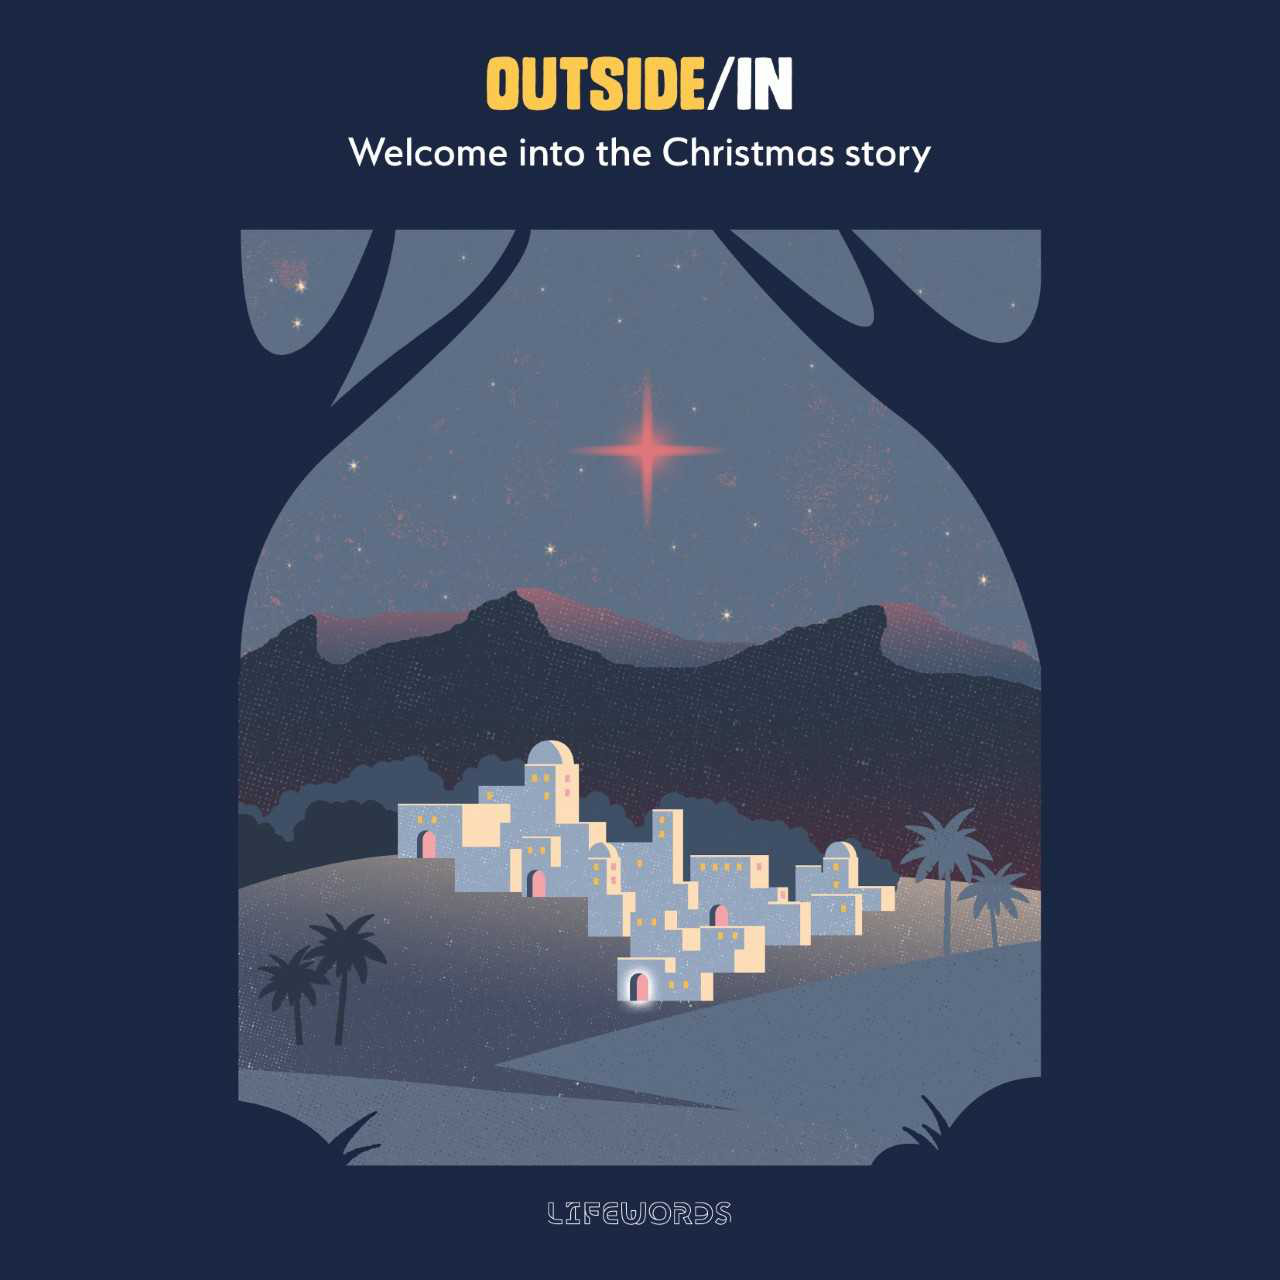 OUTSIDEIN COVER